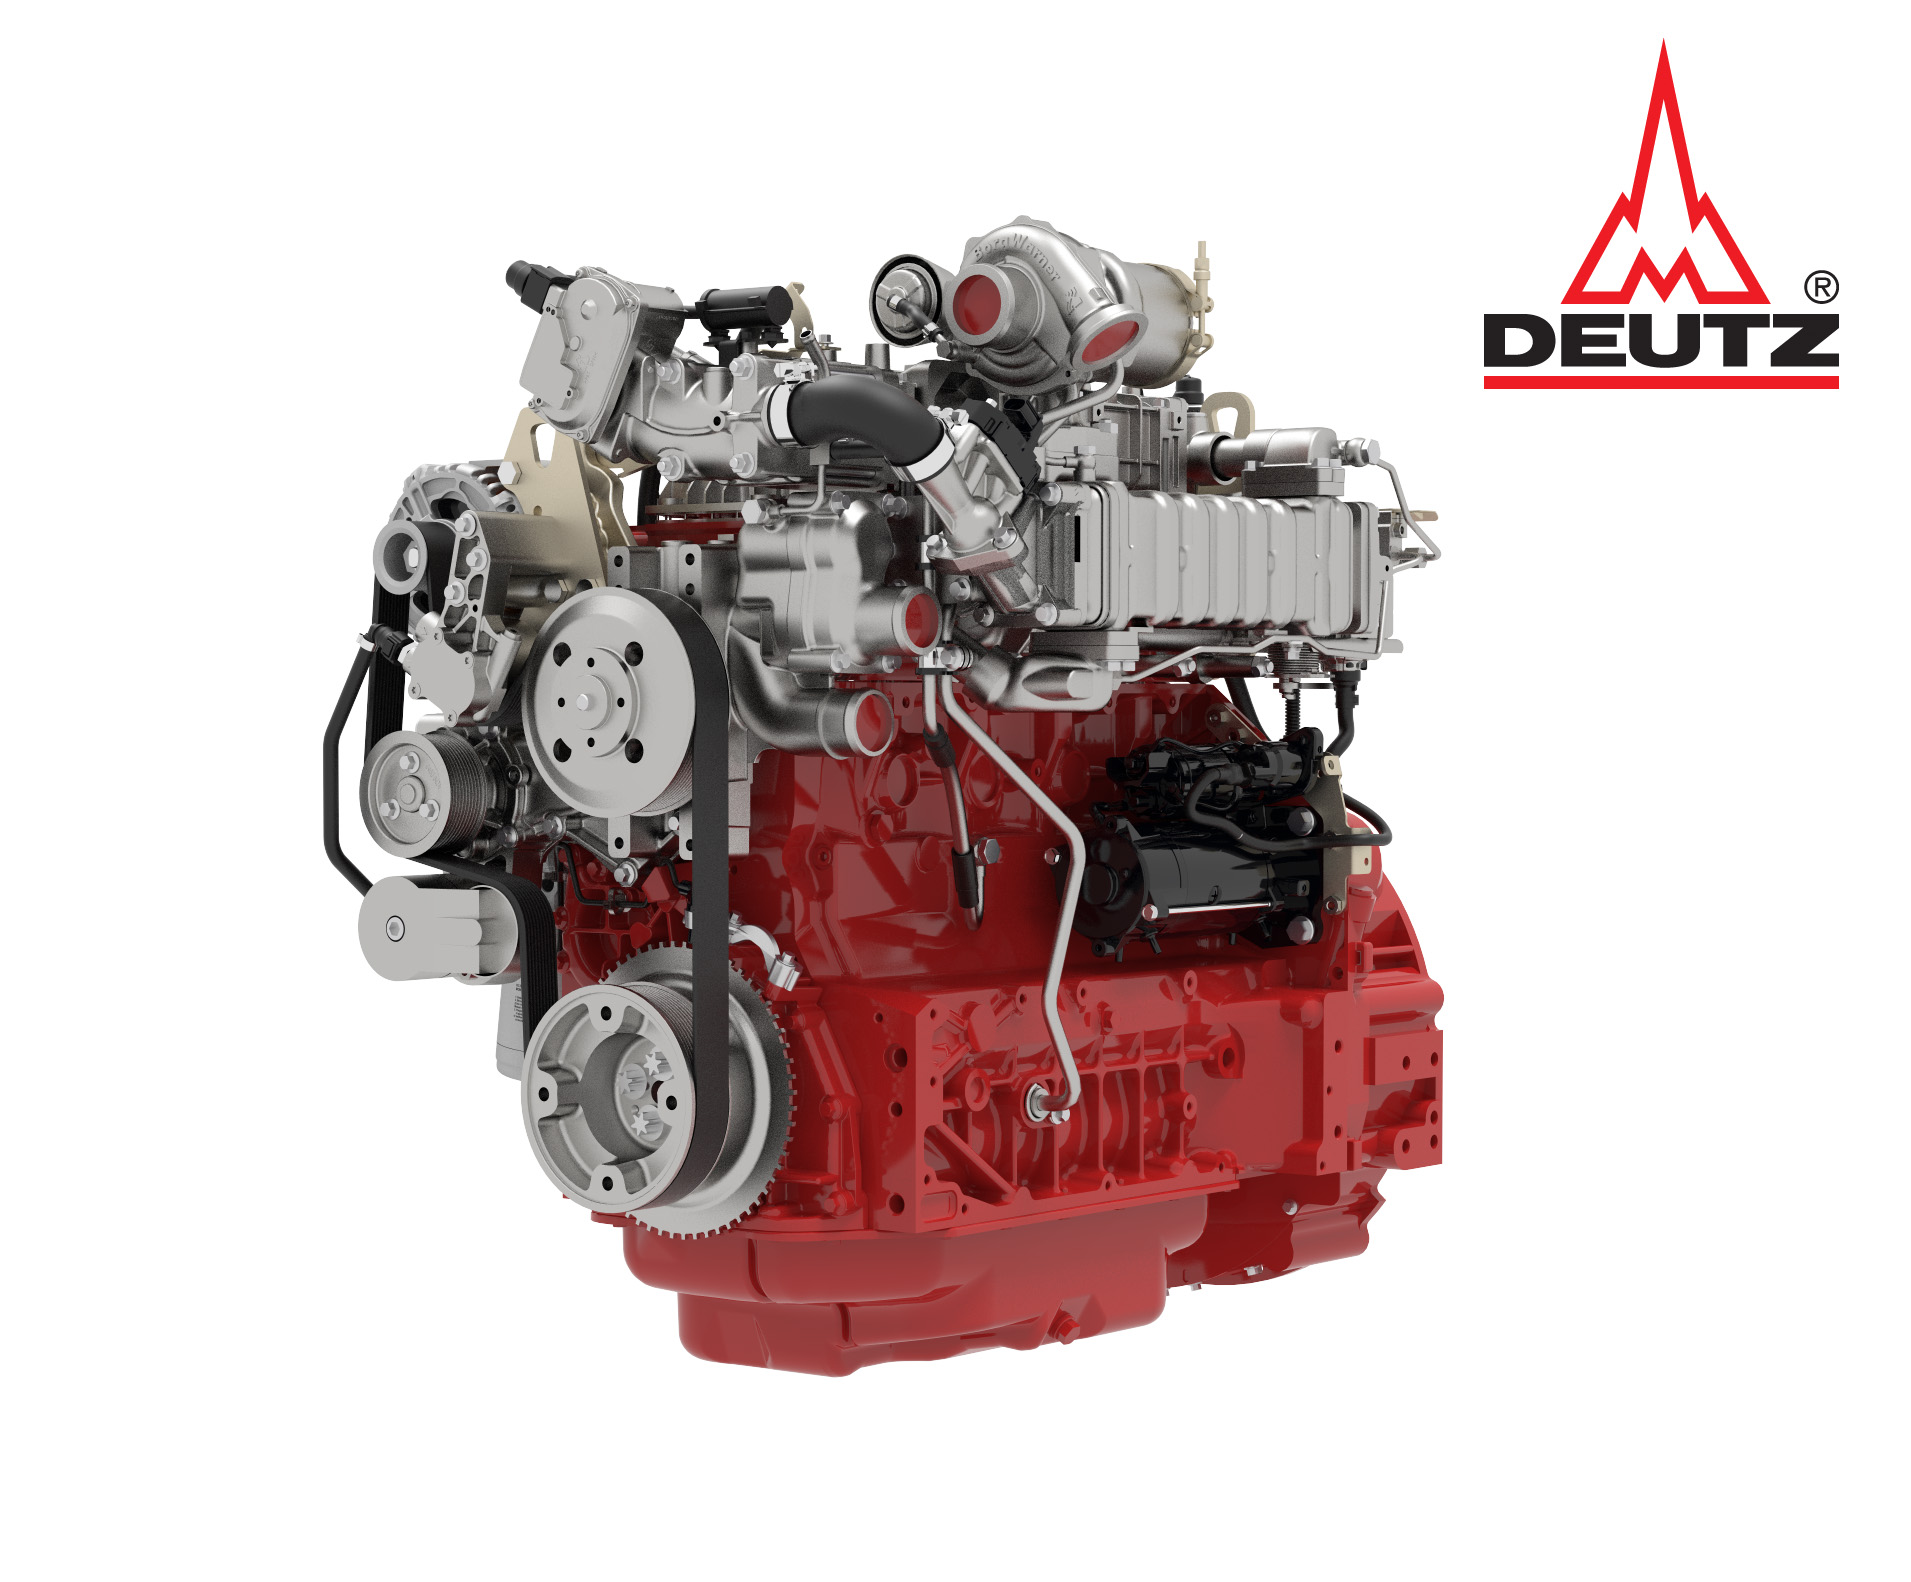 Deutz Engines To Be Widely Represented At Icuee 2015